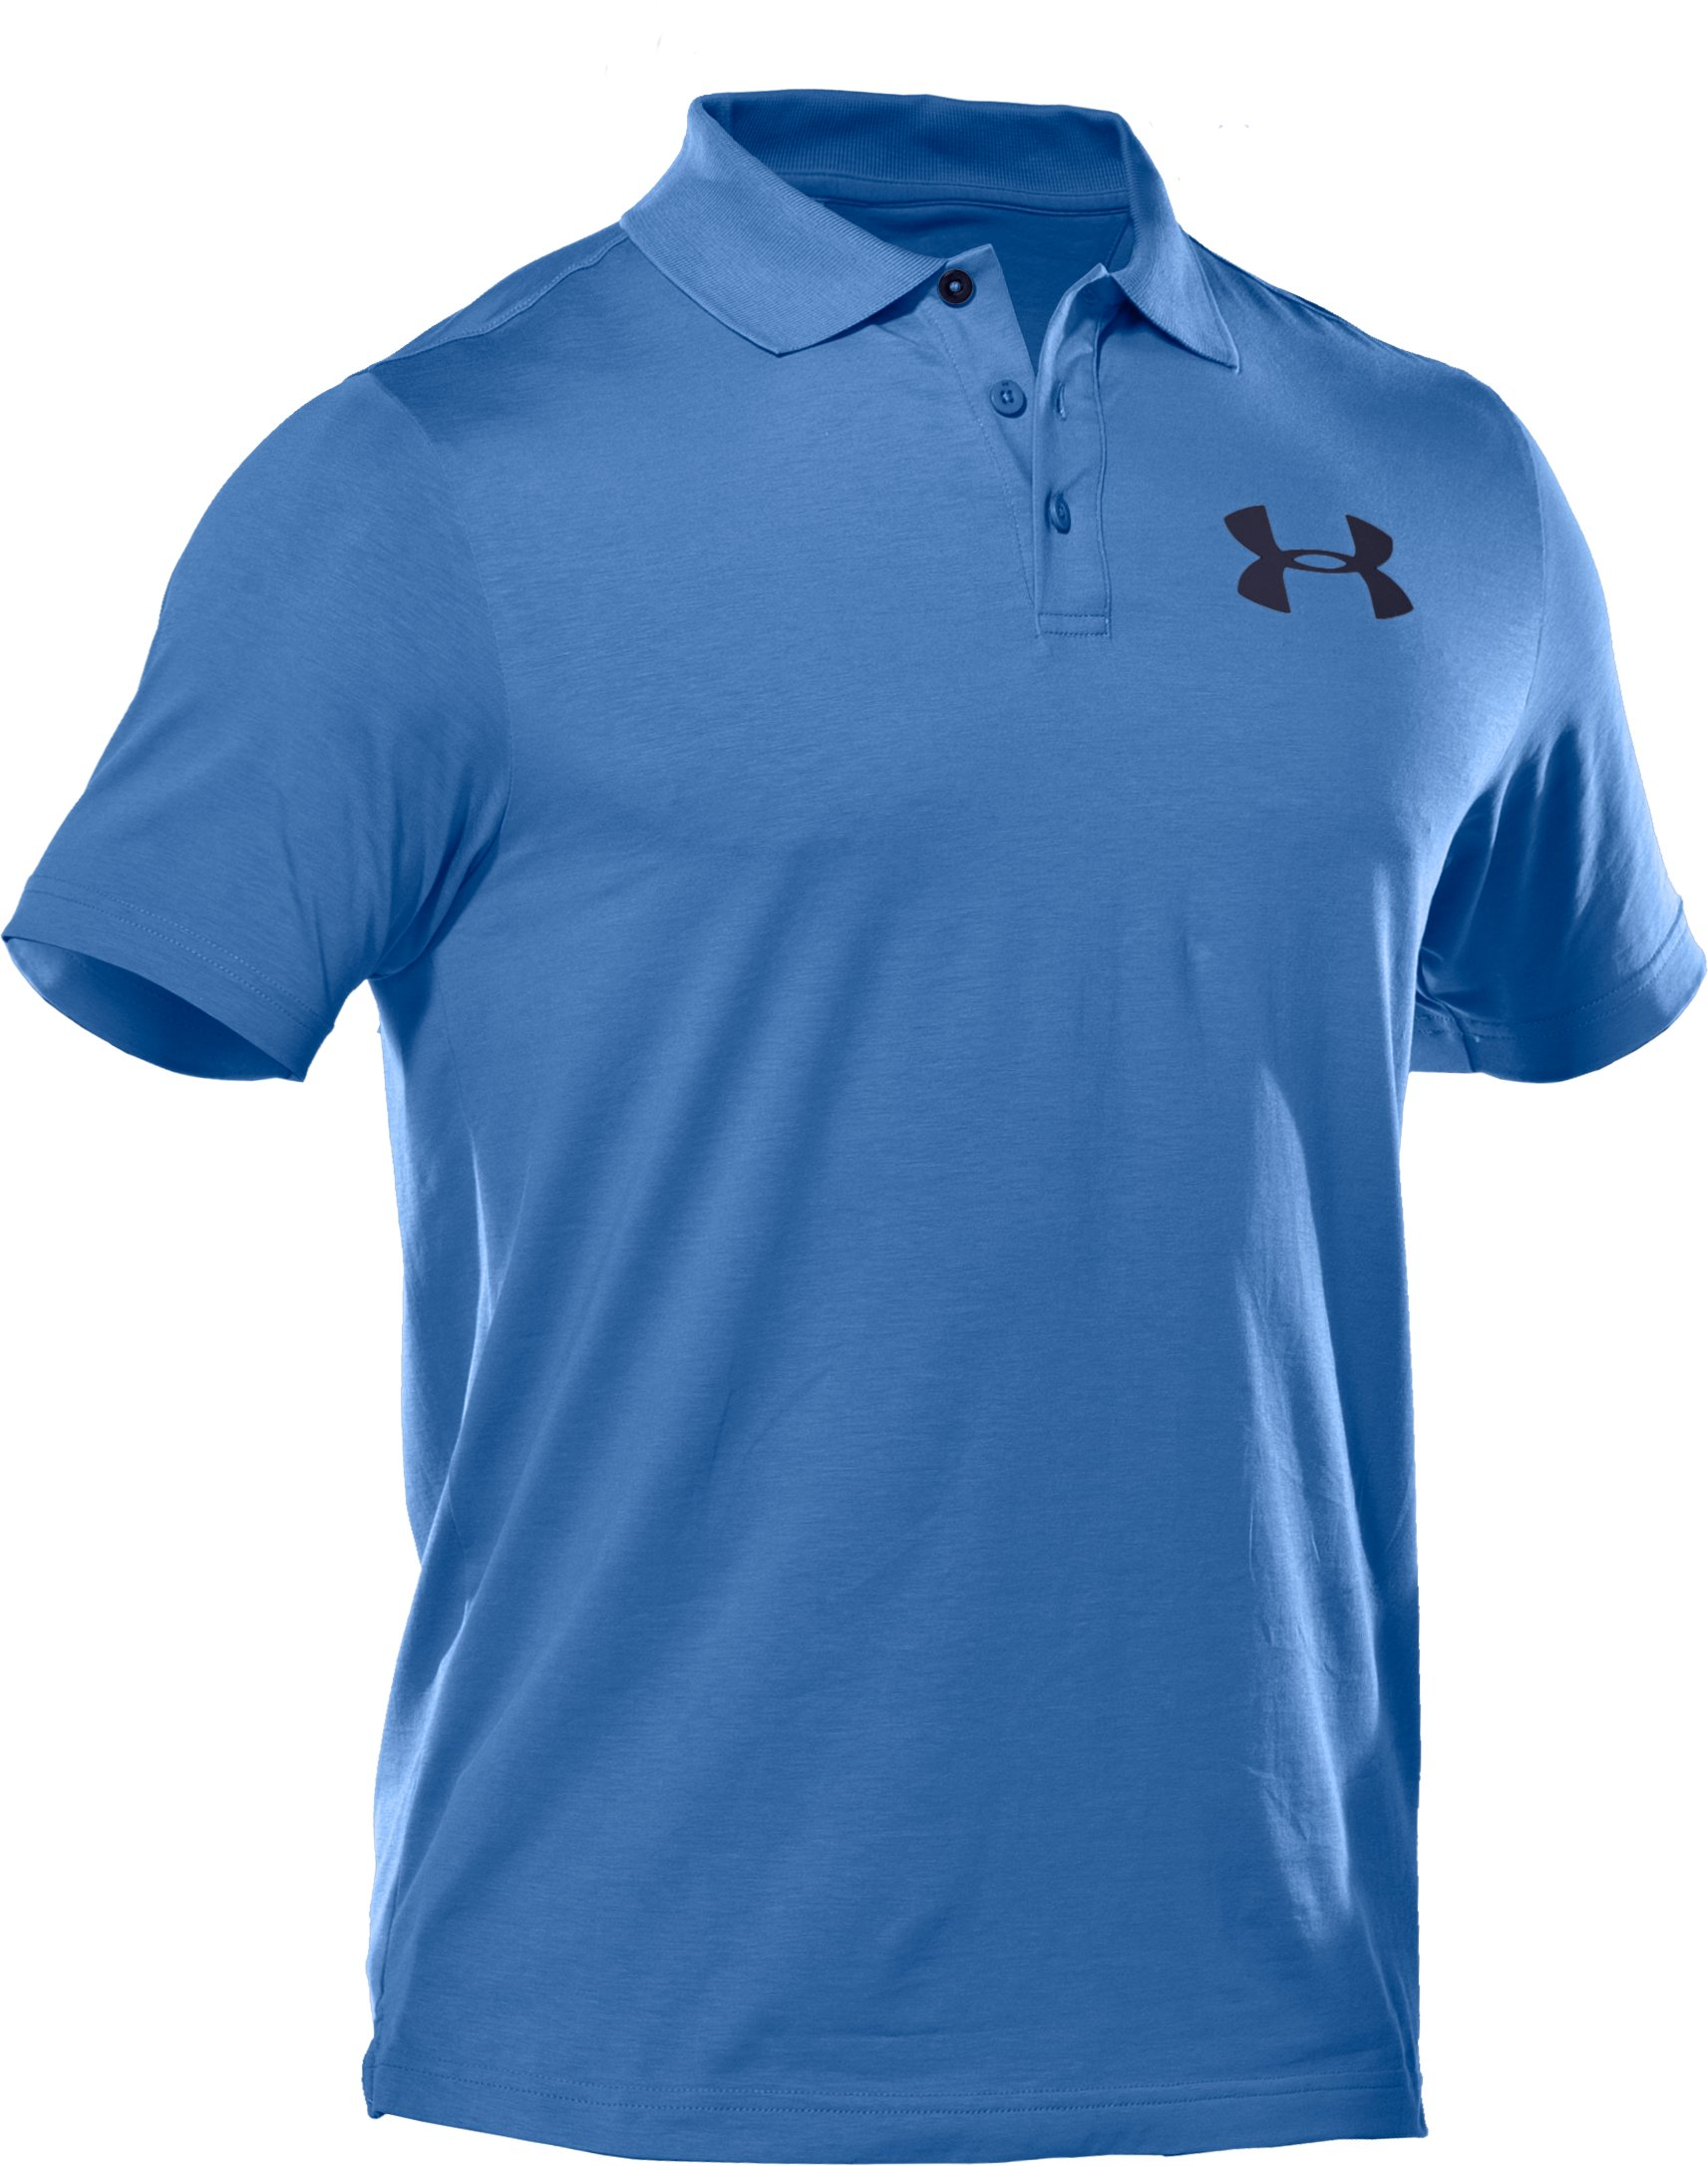 Men's Charged Cotton® Jersey Solid Polo, Moody